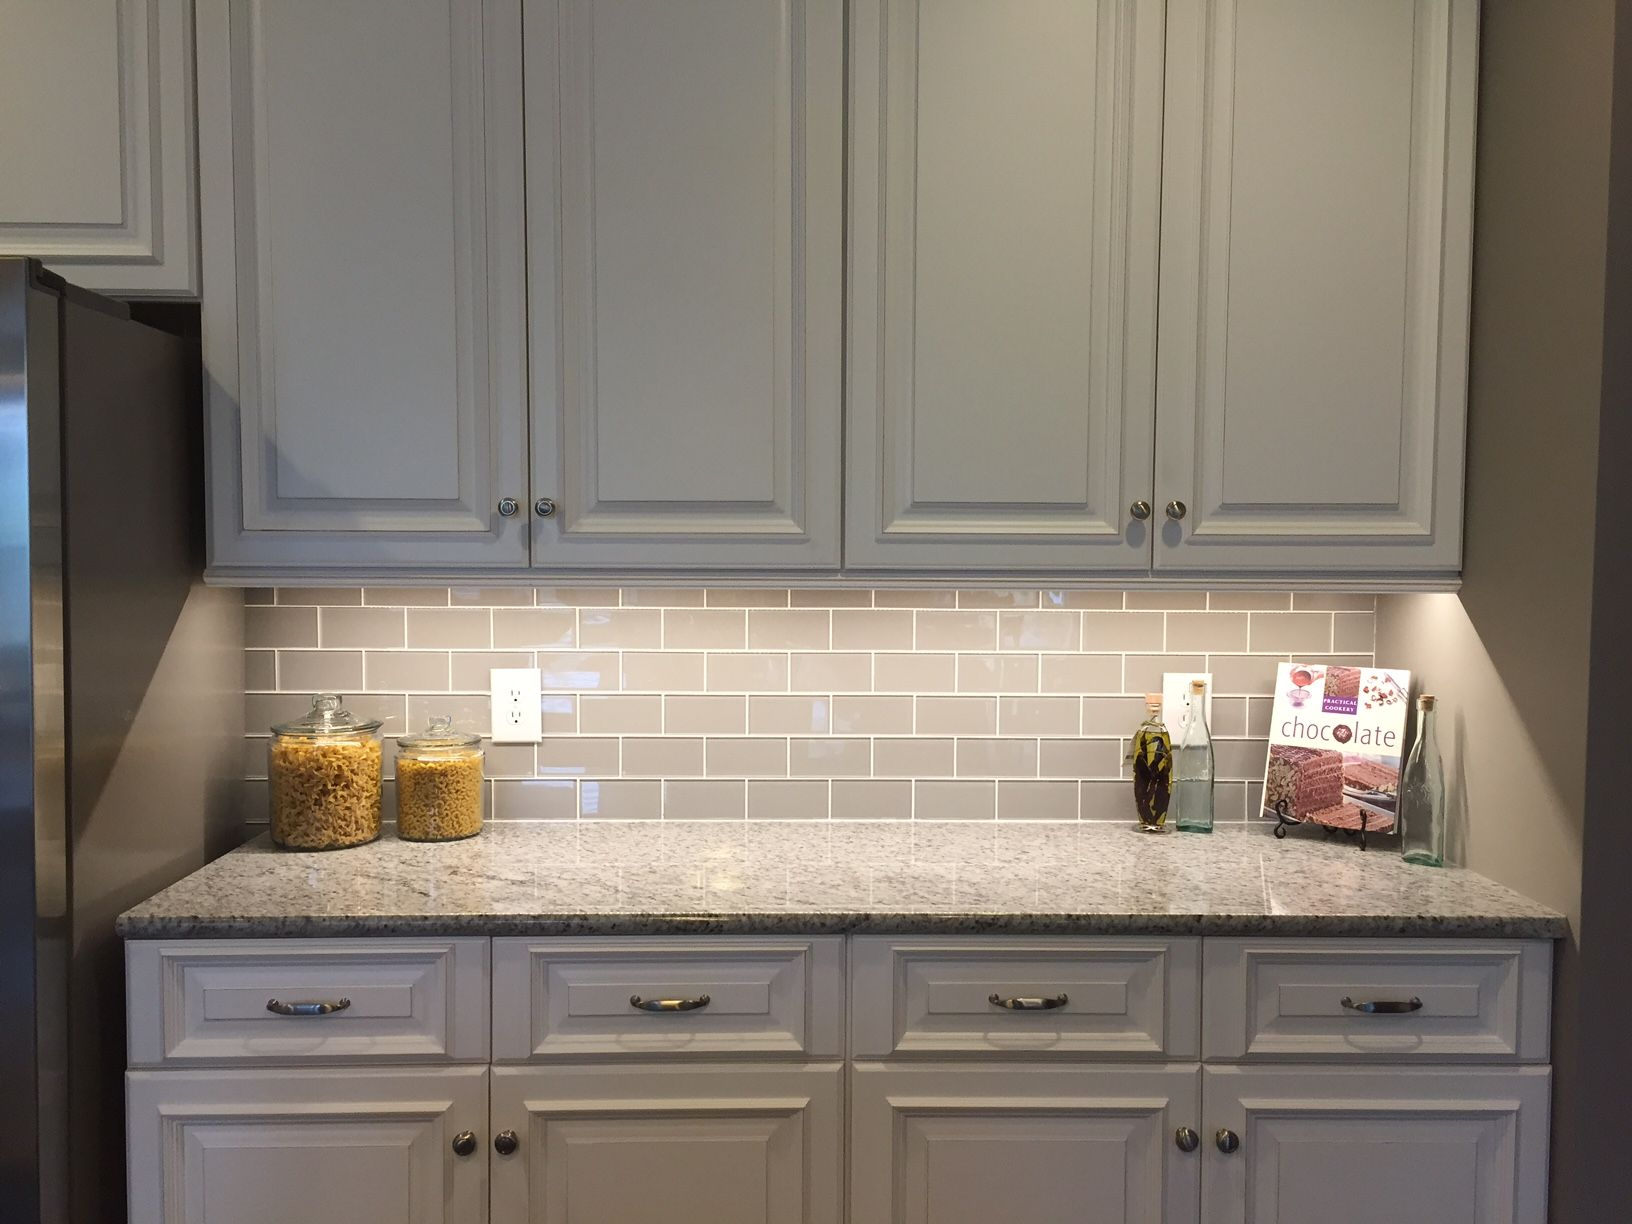 Kitchen Design Subway Tile Backsplash Smoke Glass Subway Tile Backsplashes Kitchen Cabinets